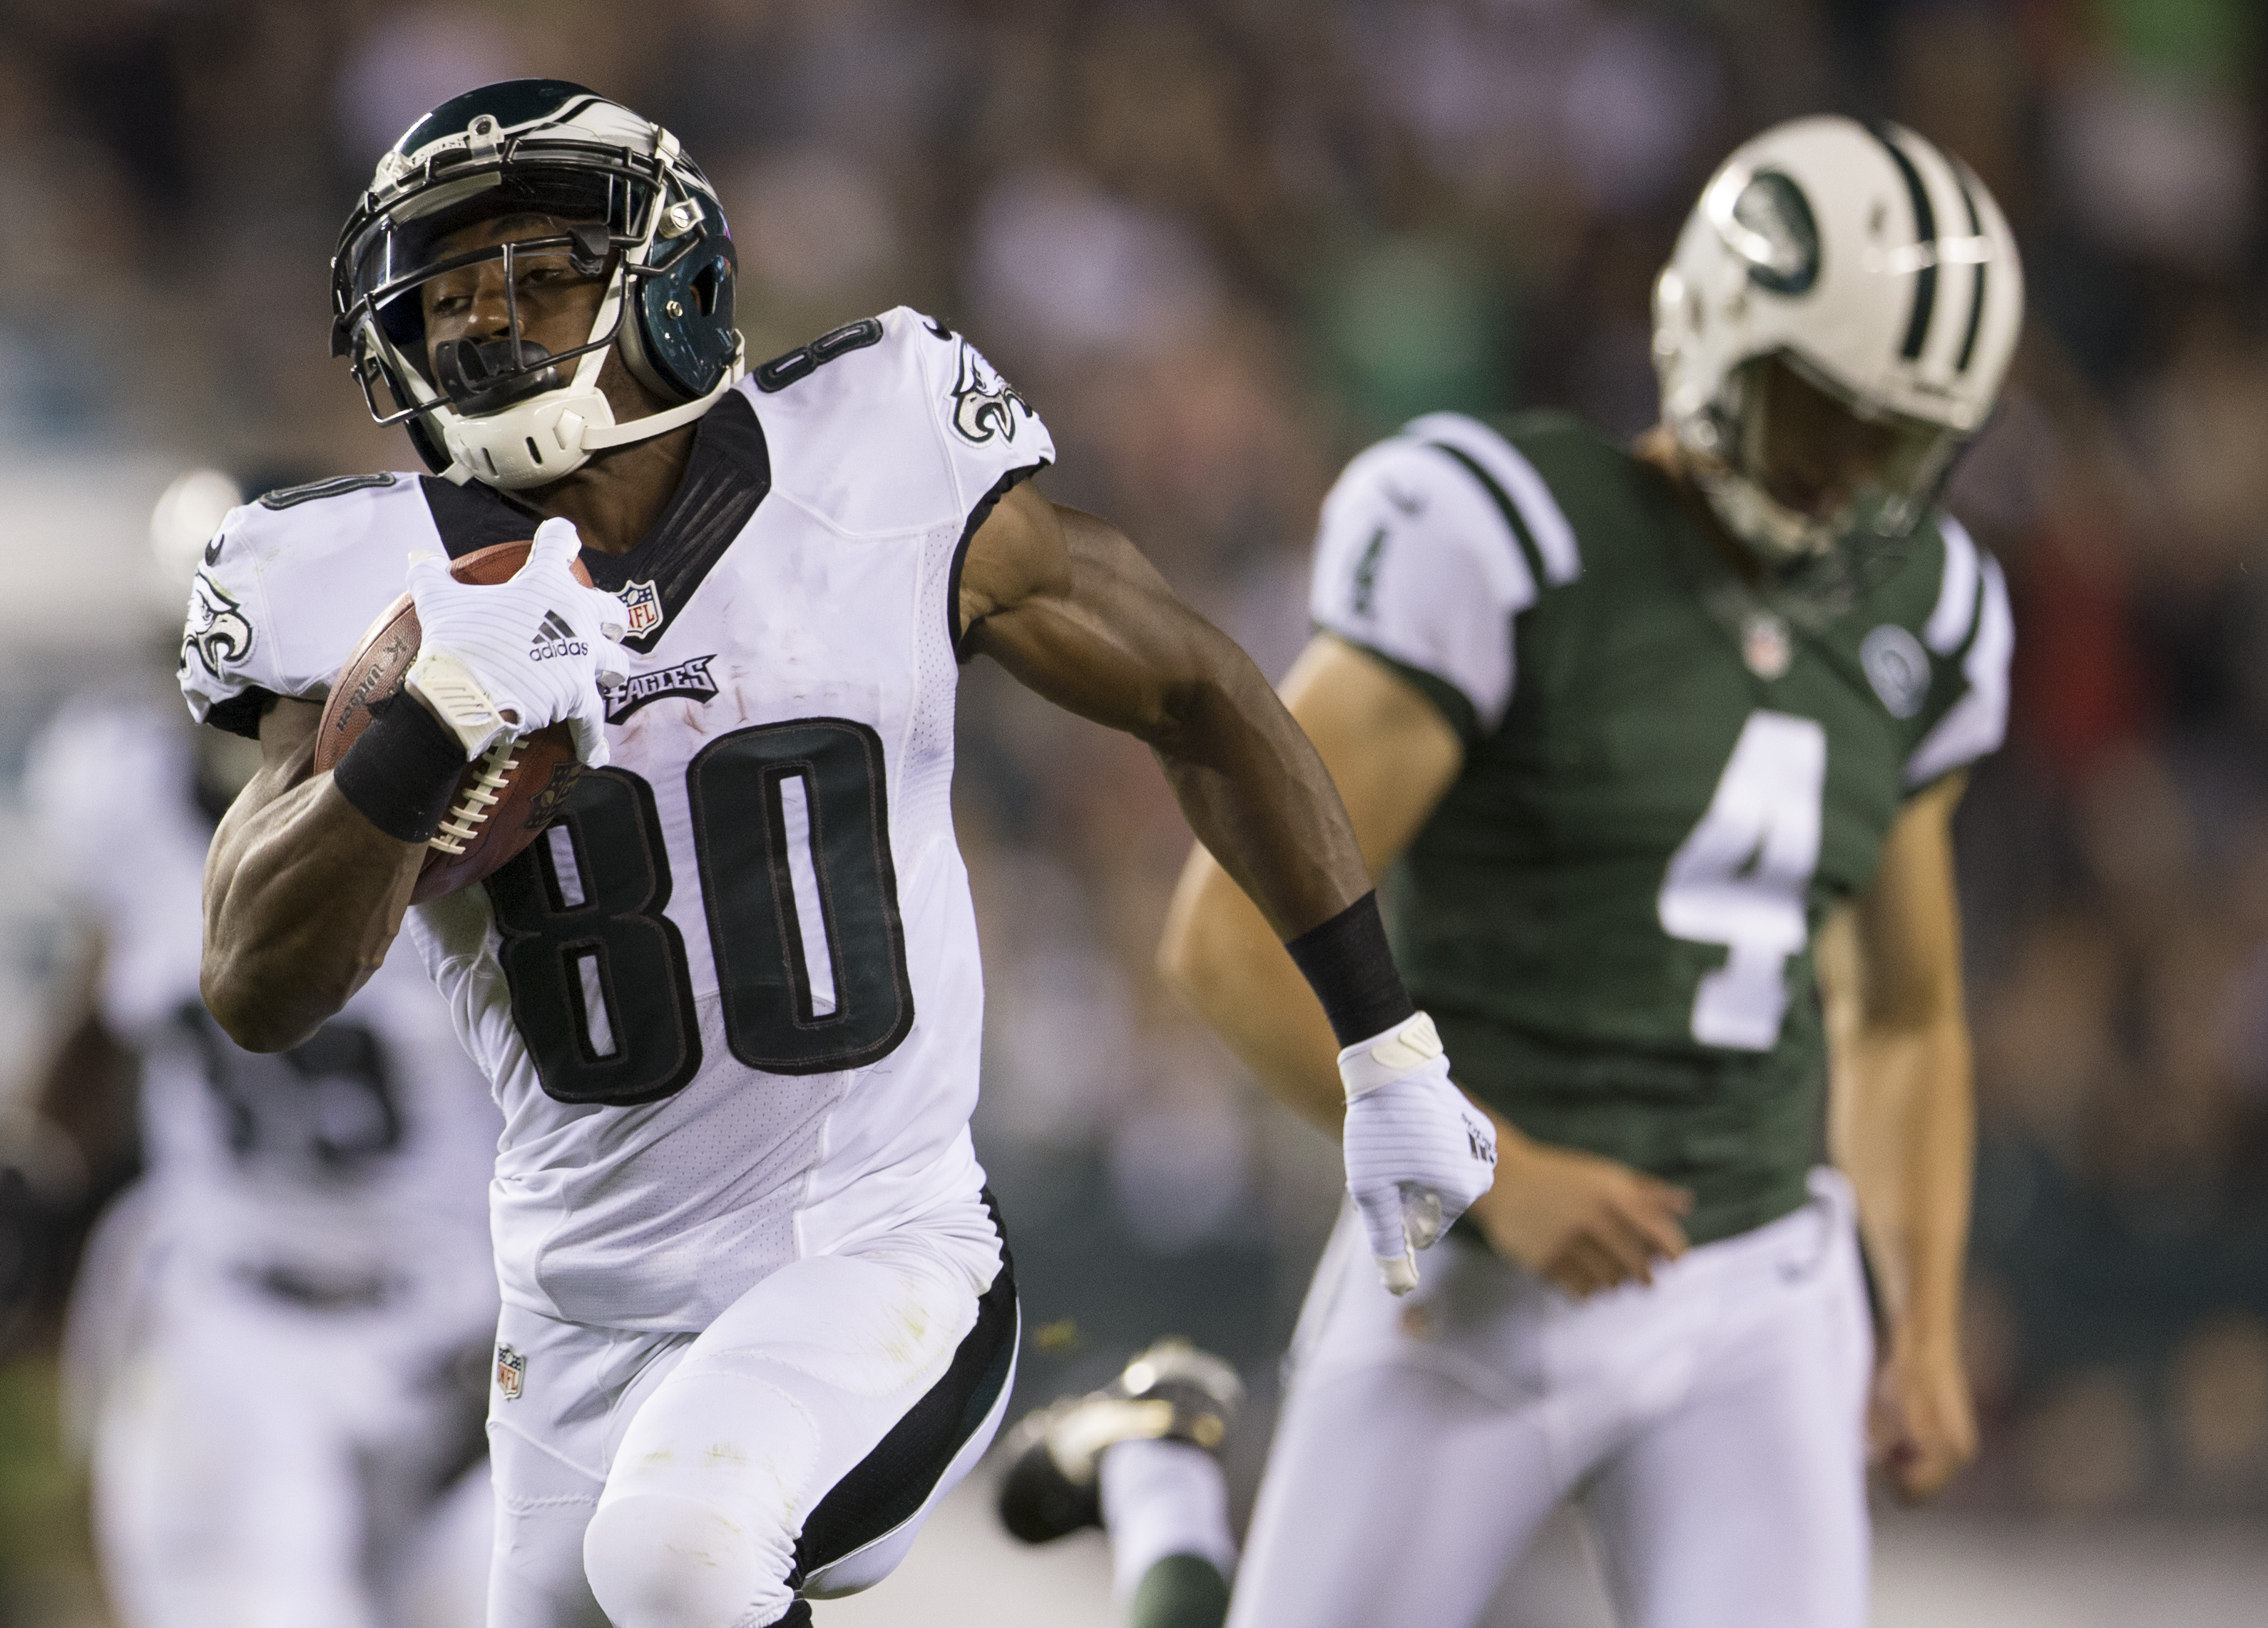 Eagles sign WR Paul Turner to active roster, release CB Grymes